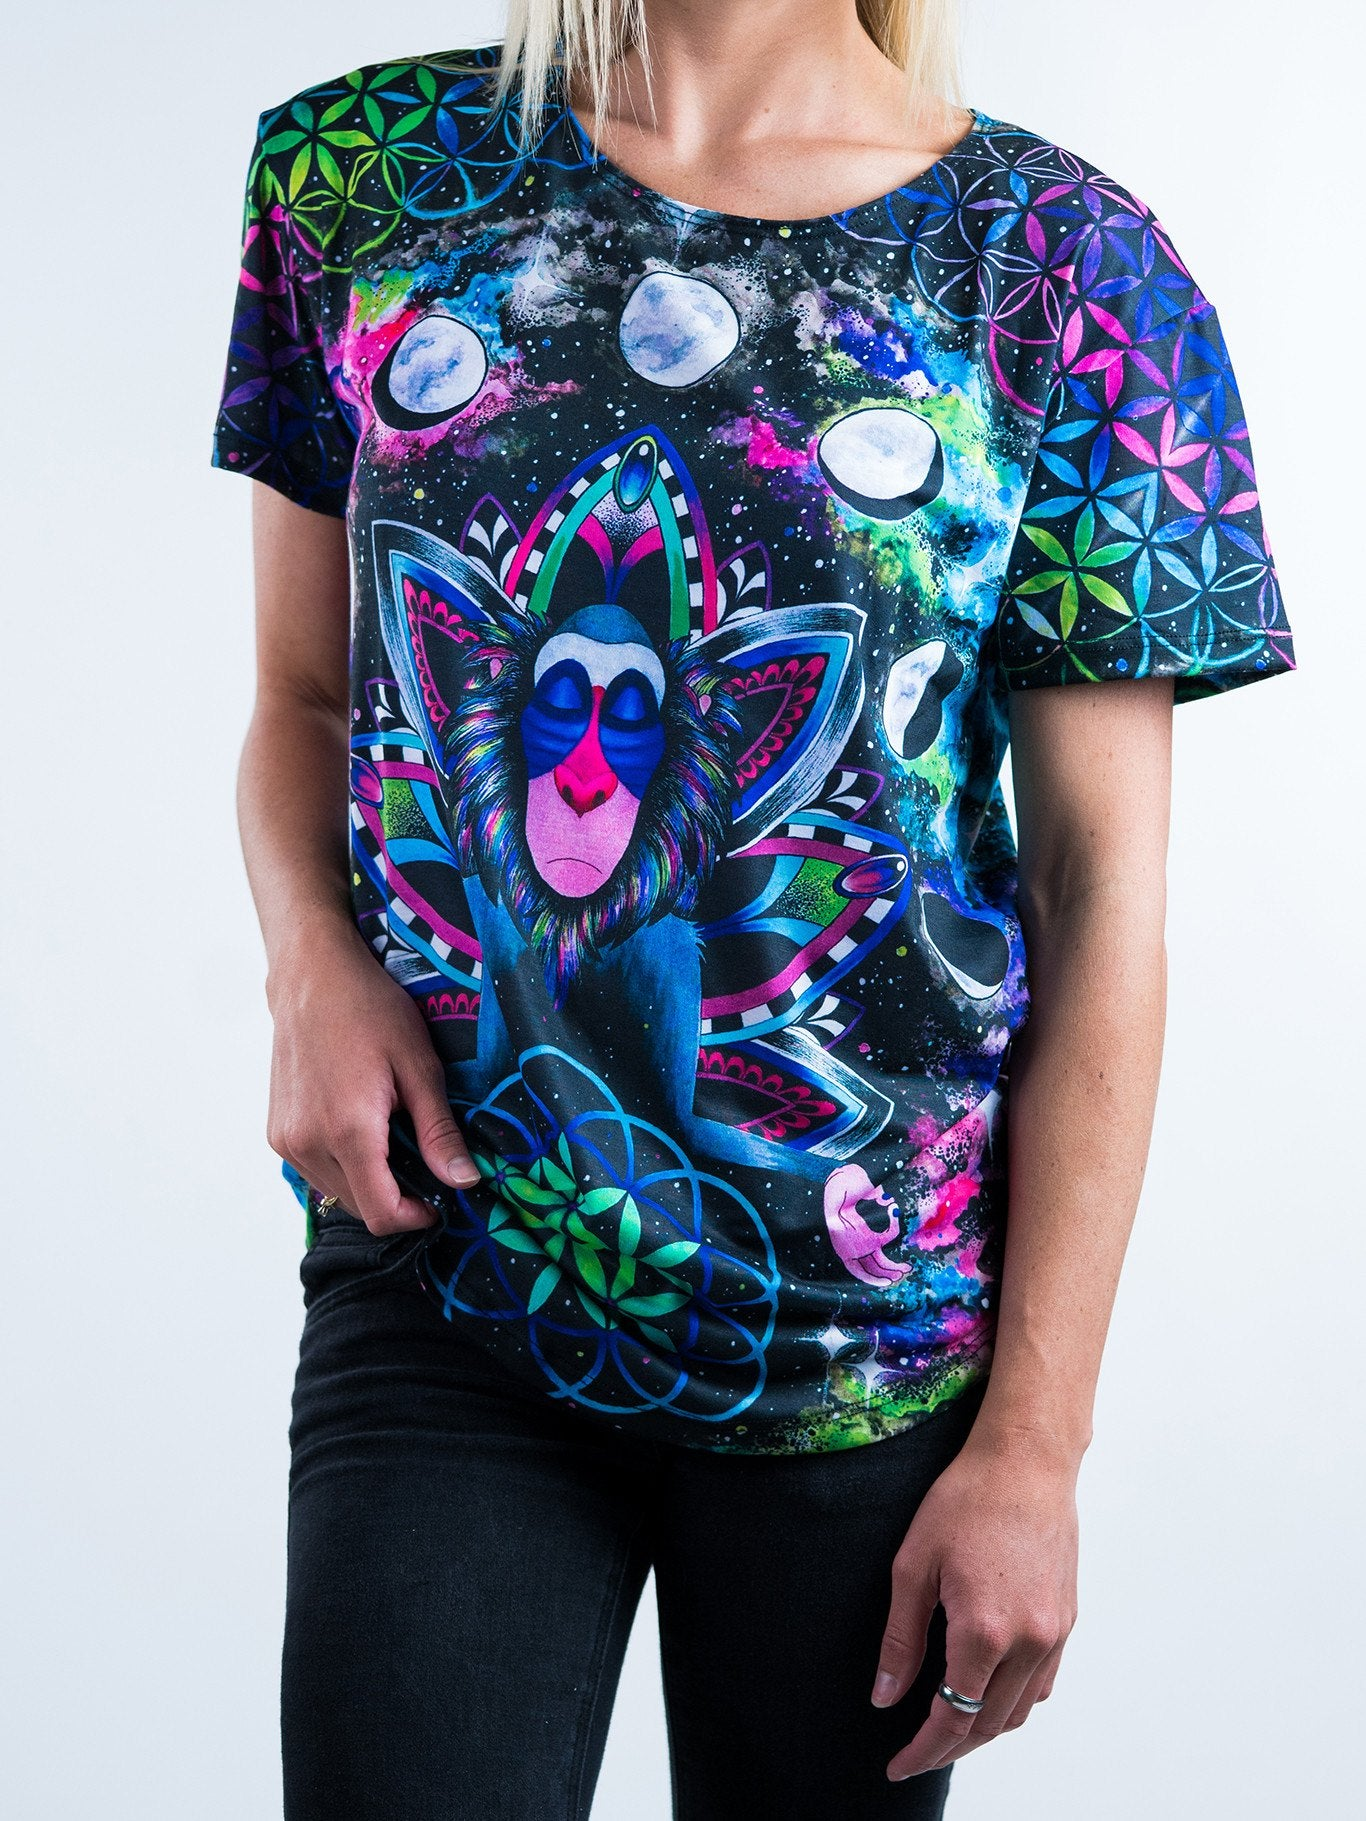 Astral Rafiki Scoop Tee T-Shirts T6